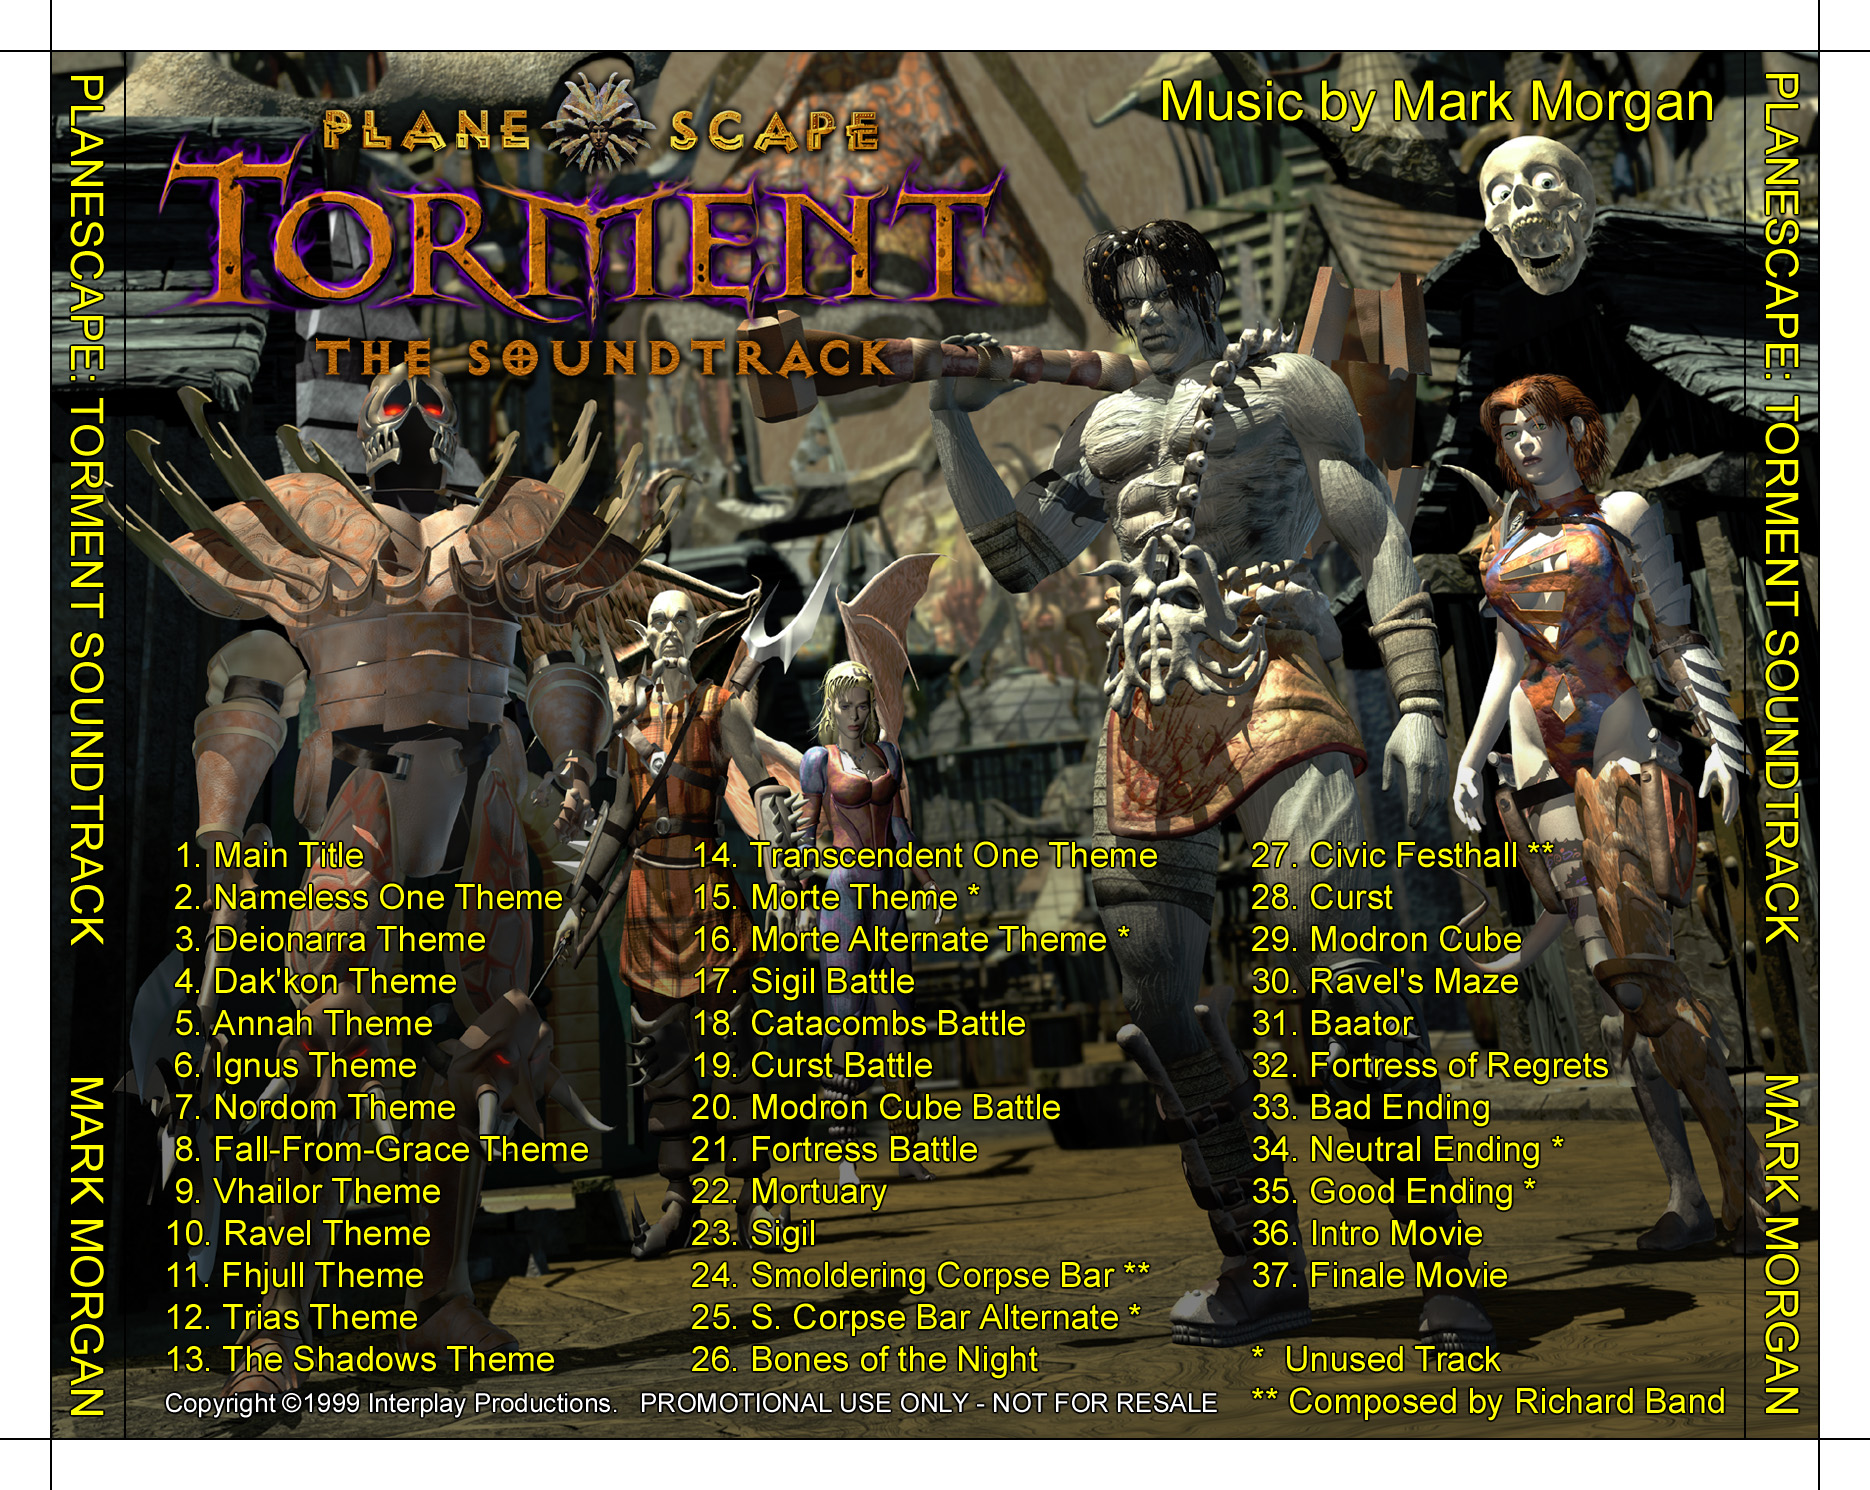 torment music track Planescape: Torment Soundtrack, retro cover Planescape: Torment (1999) © Mark Morgan, Interplay Inc. e Black Isle Studios